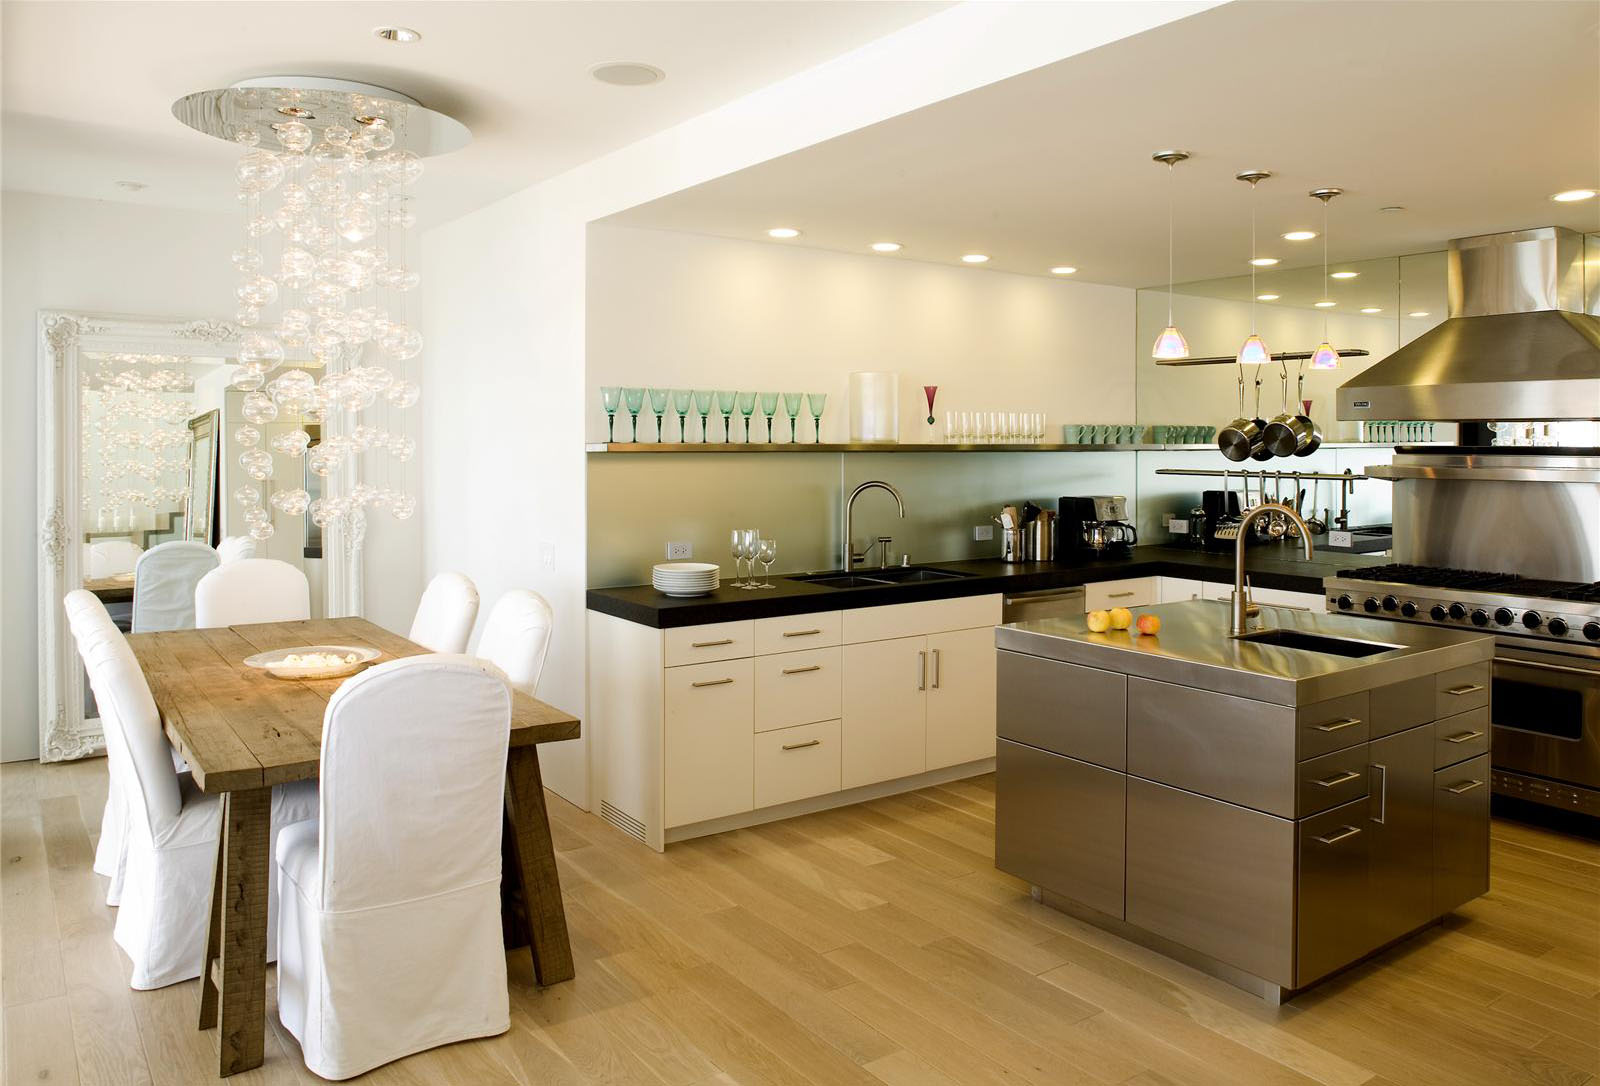 Excellent Open Contemporary Kitchen Design 1600 x 1086 · 213 kB · jpeg